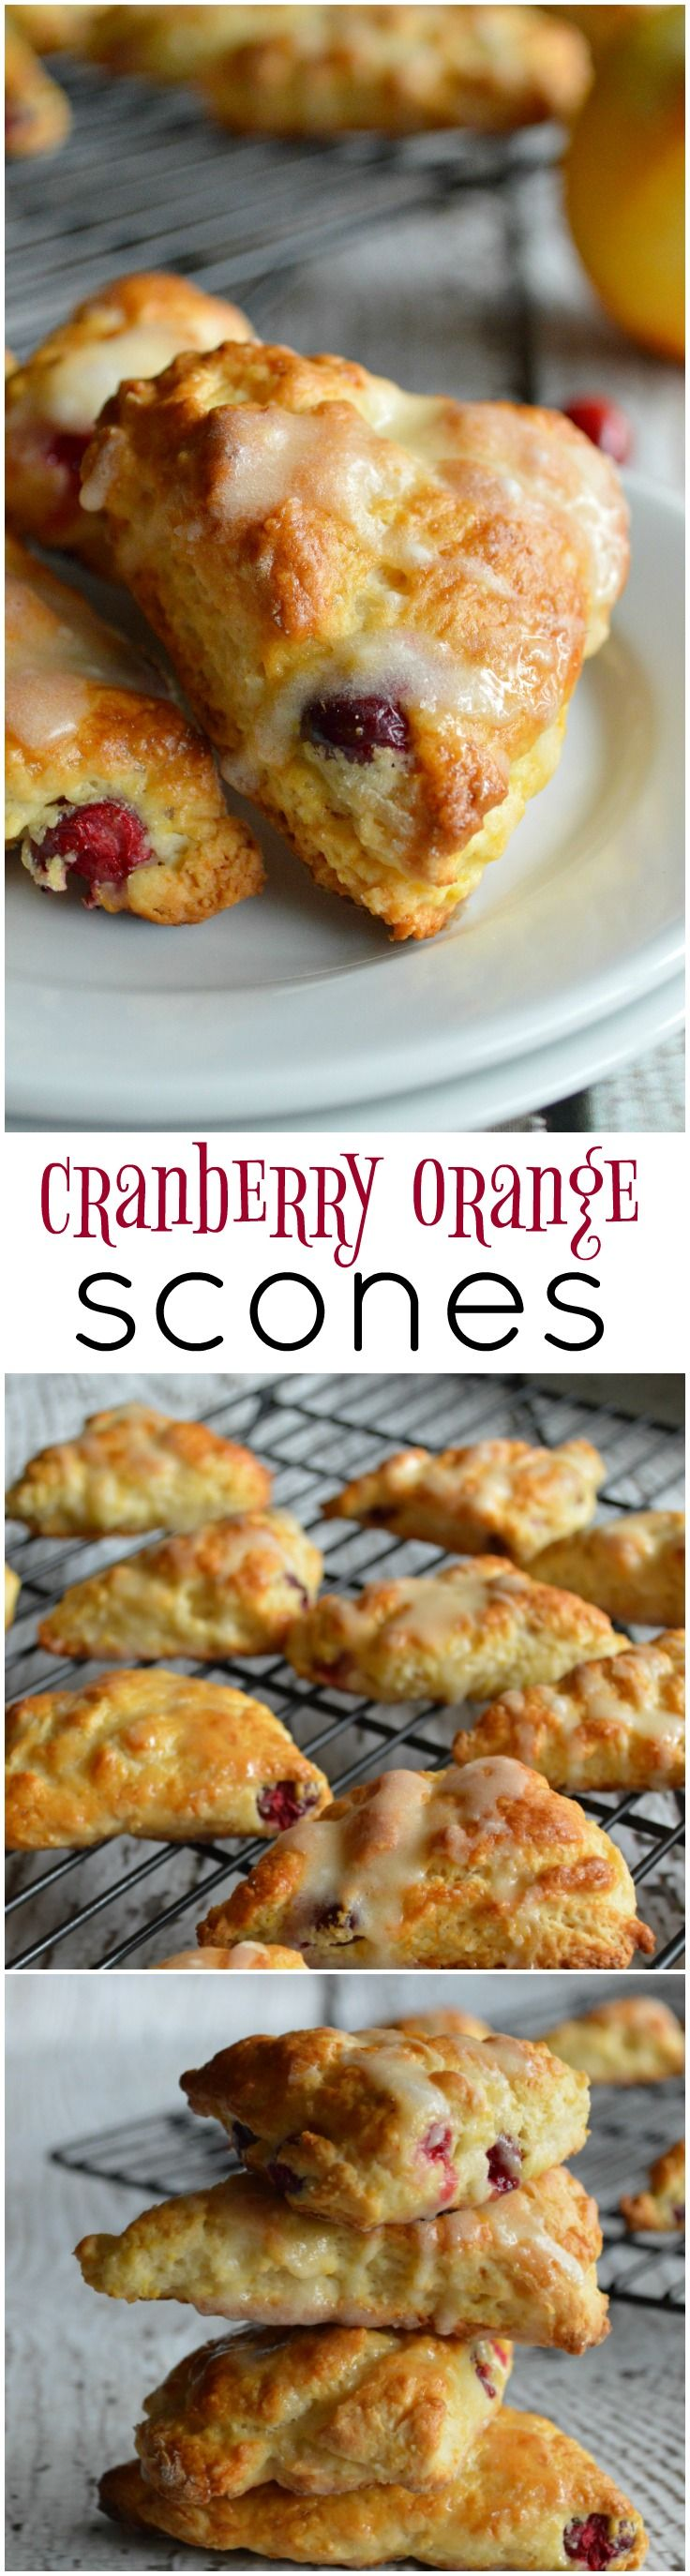 Cranberry Orange Scones Cranberry Orange Scones are loaded with fresh cranberries, orange zest, and are topped with a yummy sweet orange glaze.